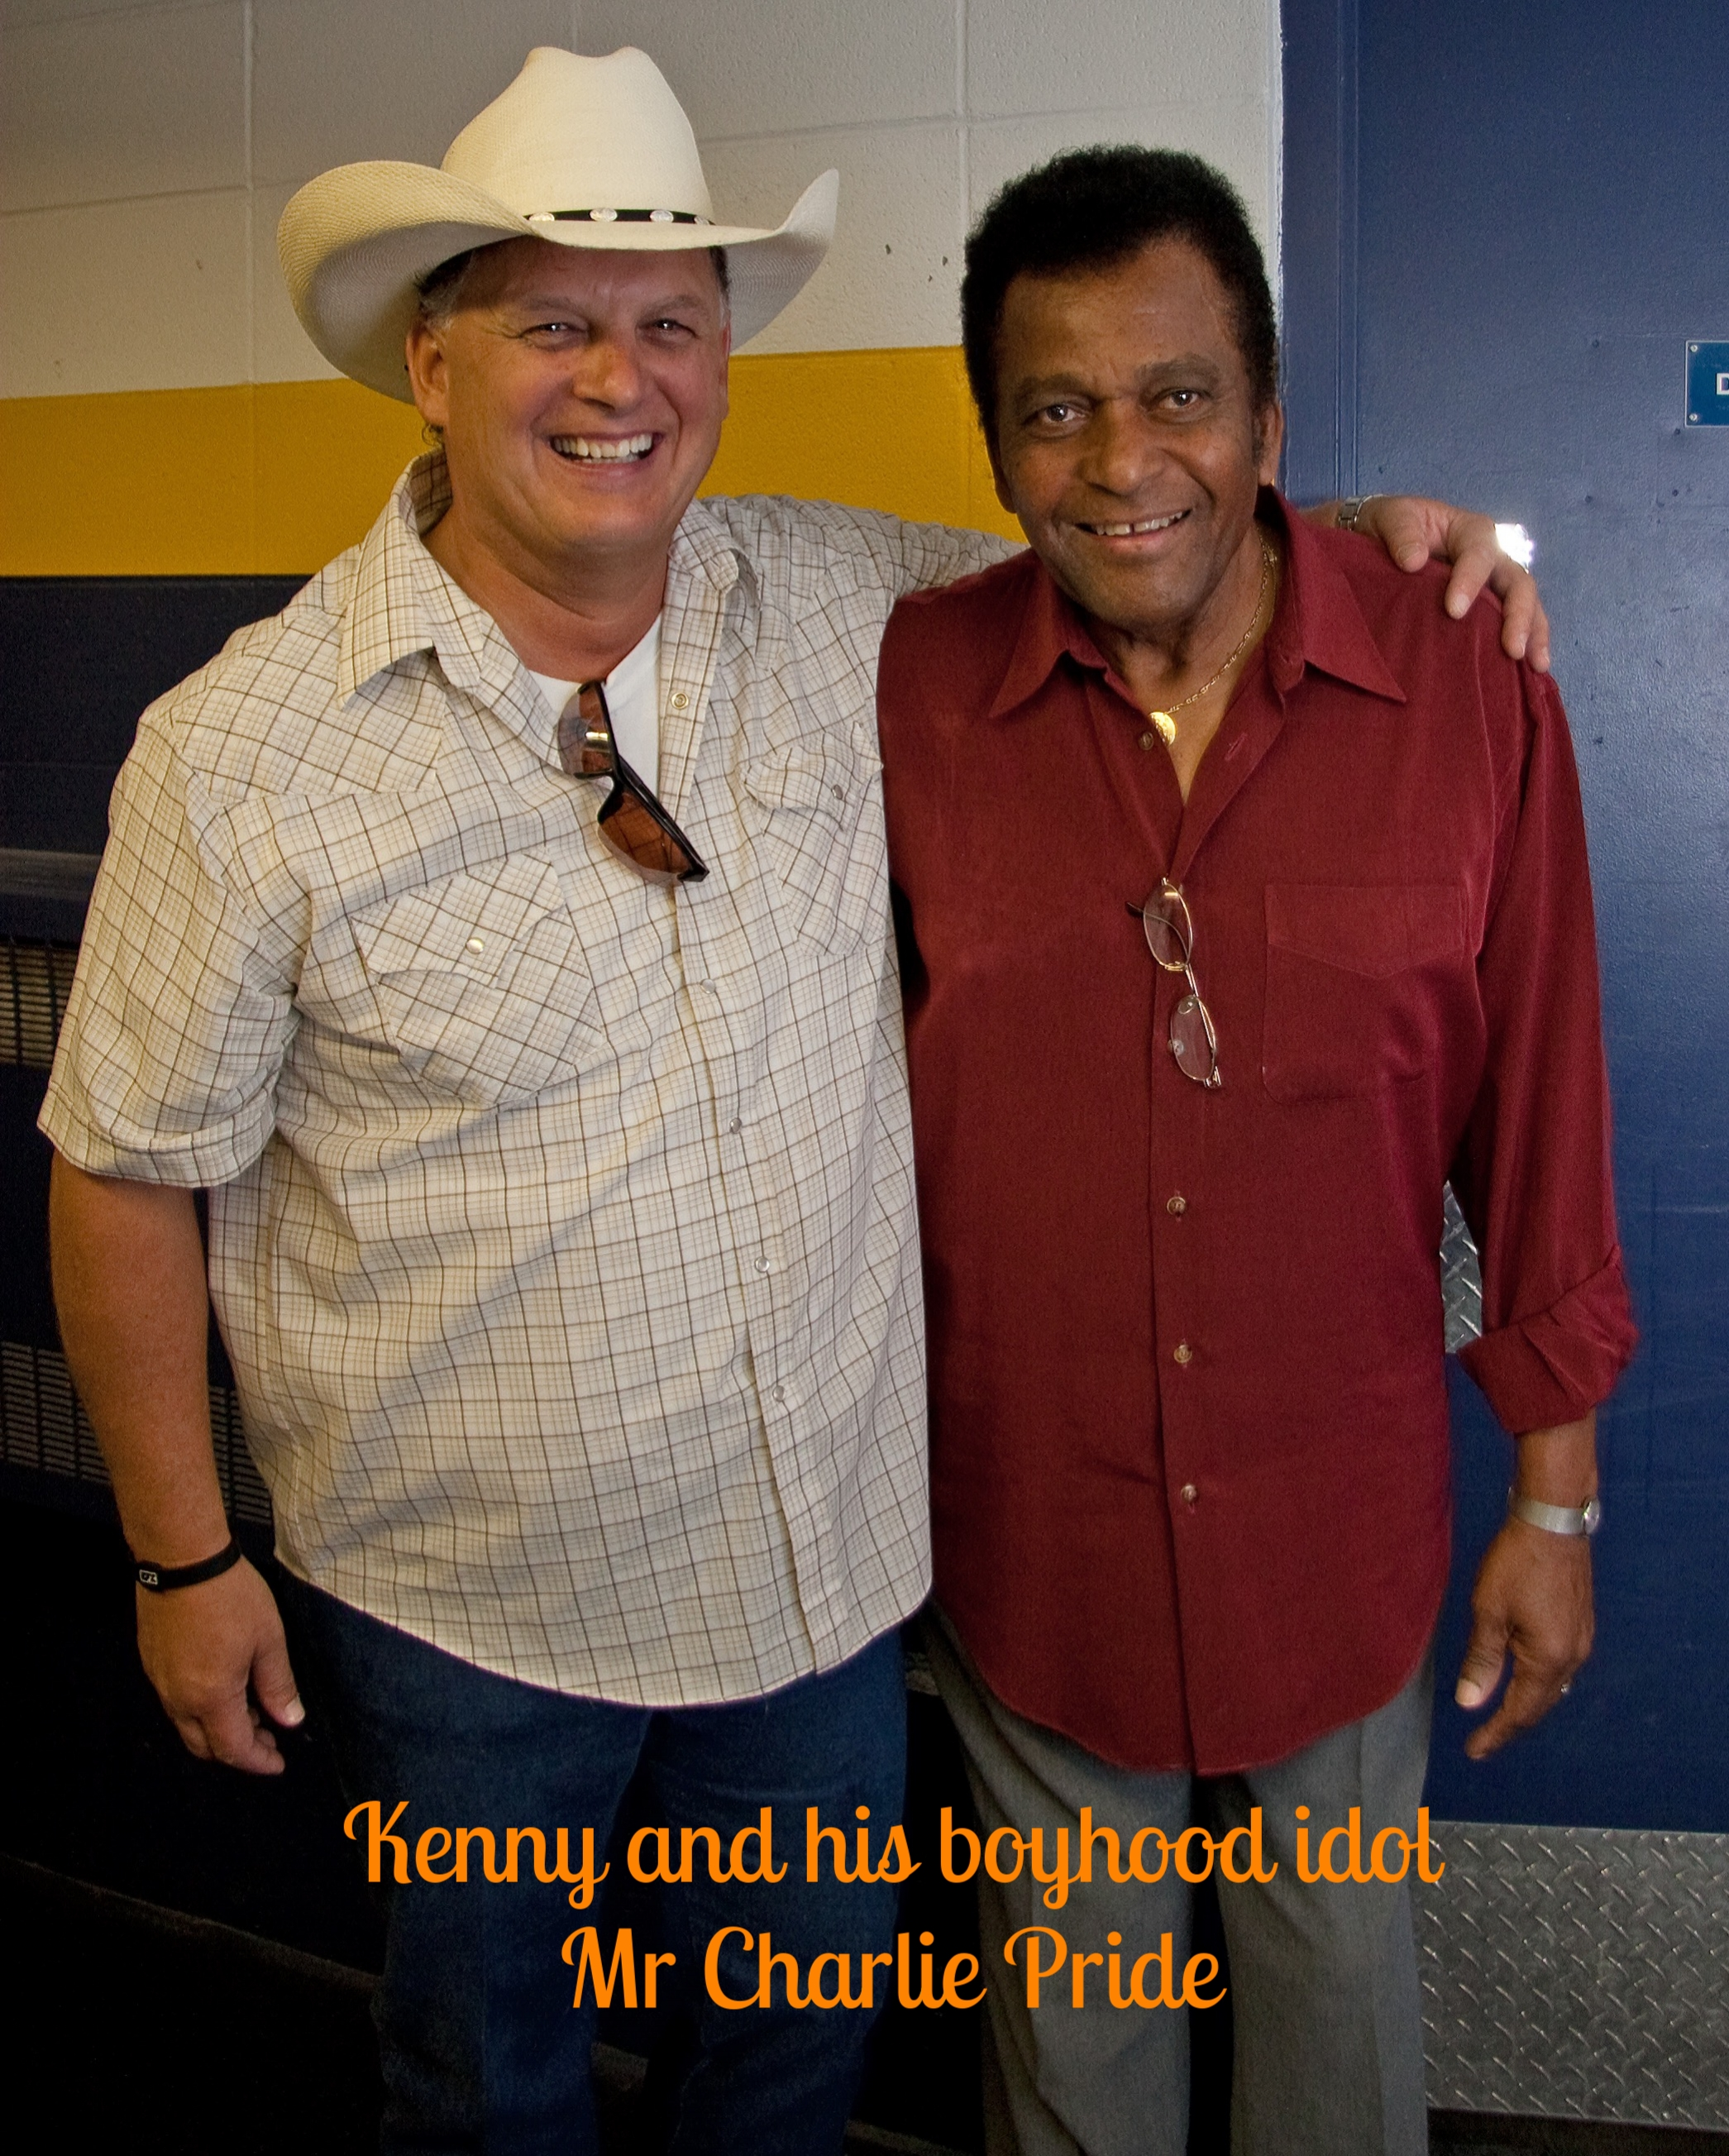 Kenny with a childhood hero Charlie Pride